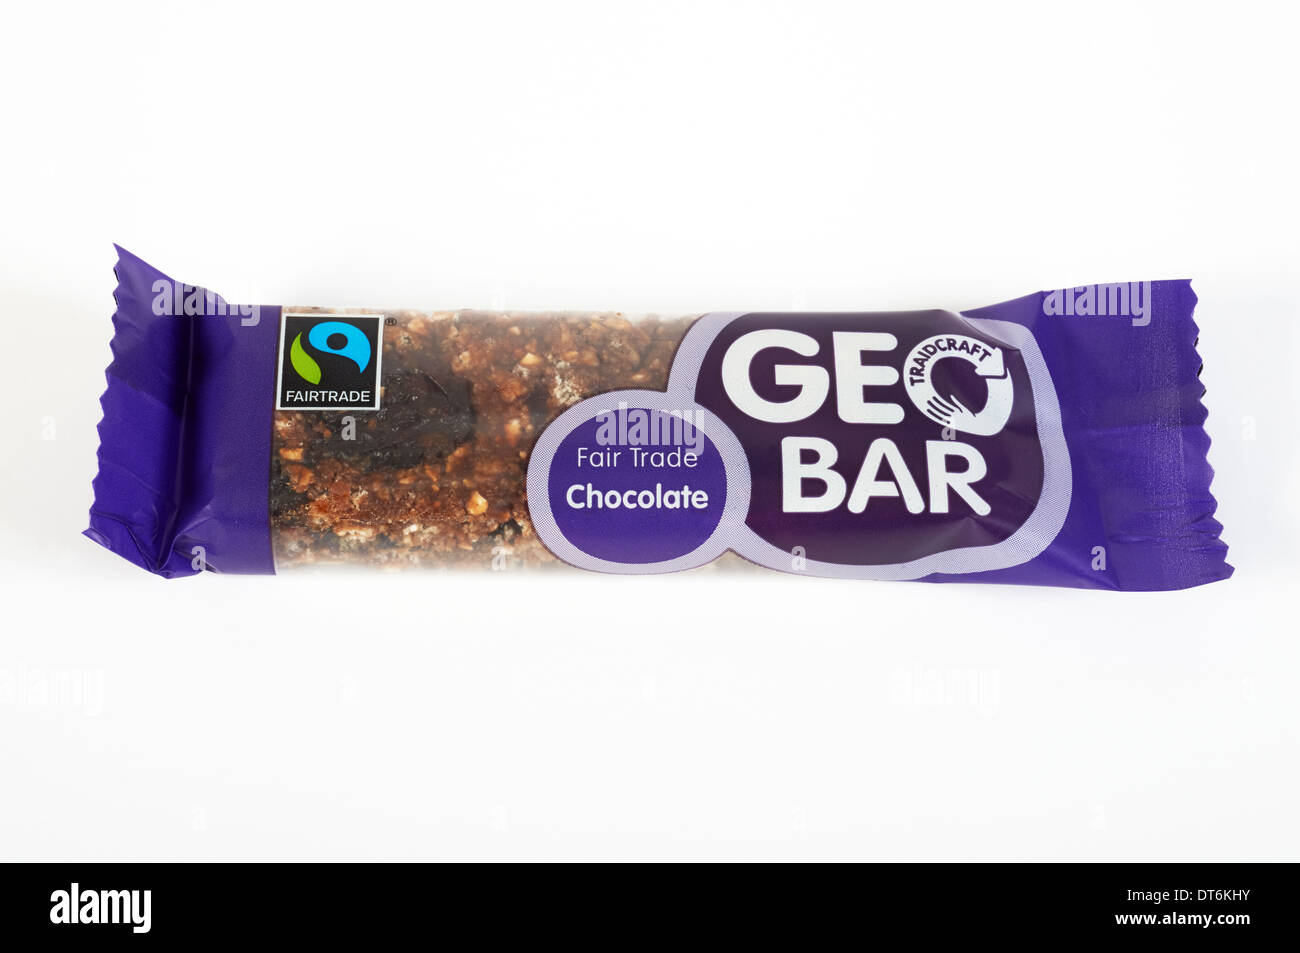 Tradecraft Fair trade chocolate Geo bar Stock Photo, Royalty Free ...